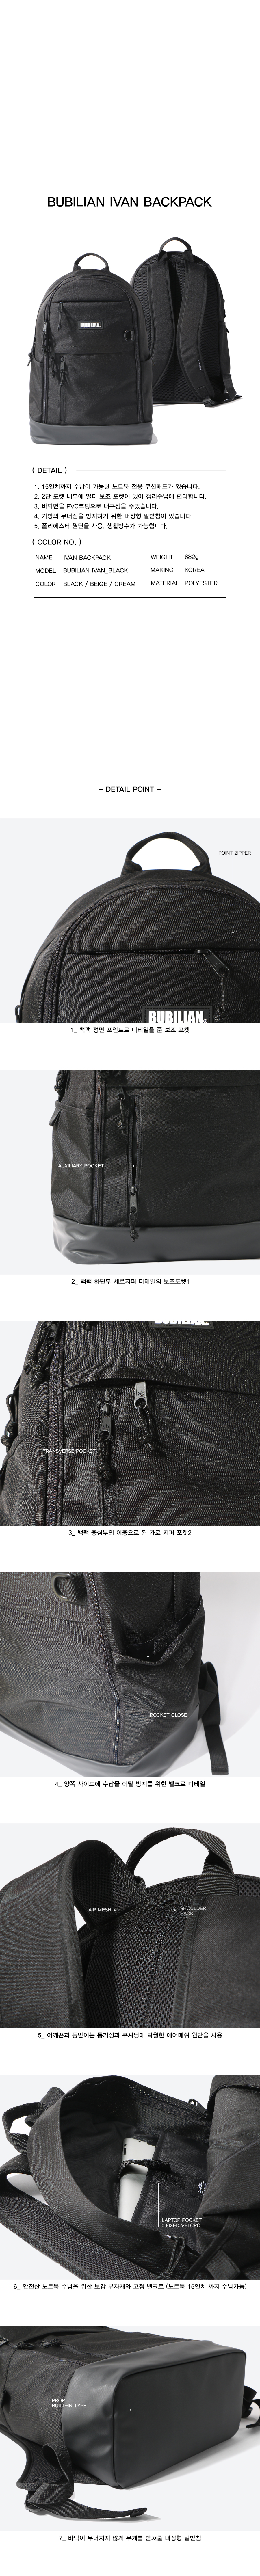 [롱스트랩 포함]Bubilian Ivan Backpack _ [BLACK]